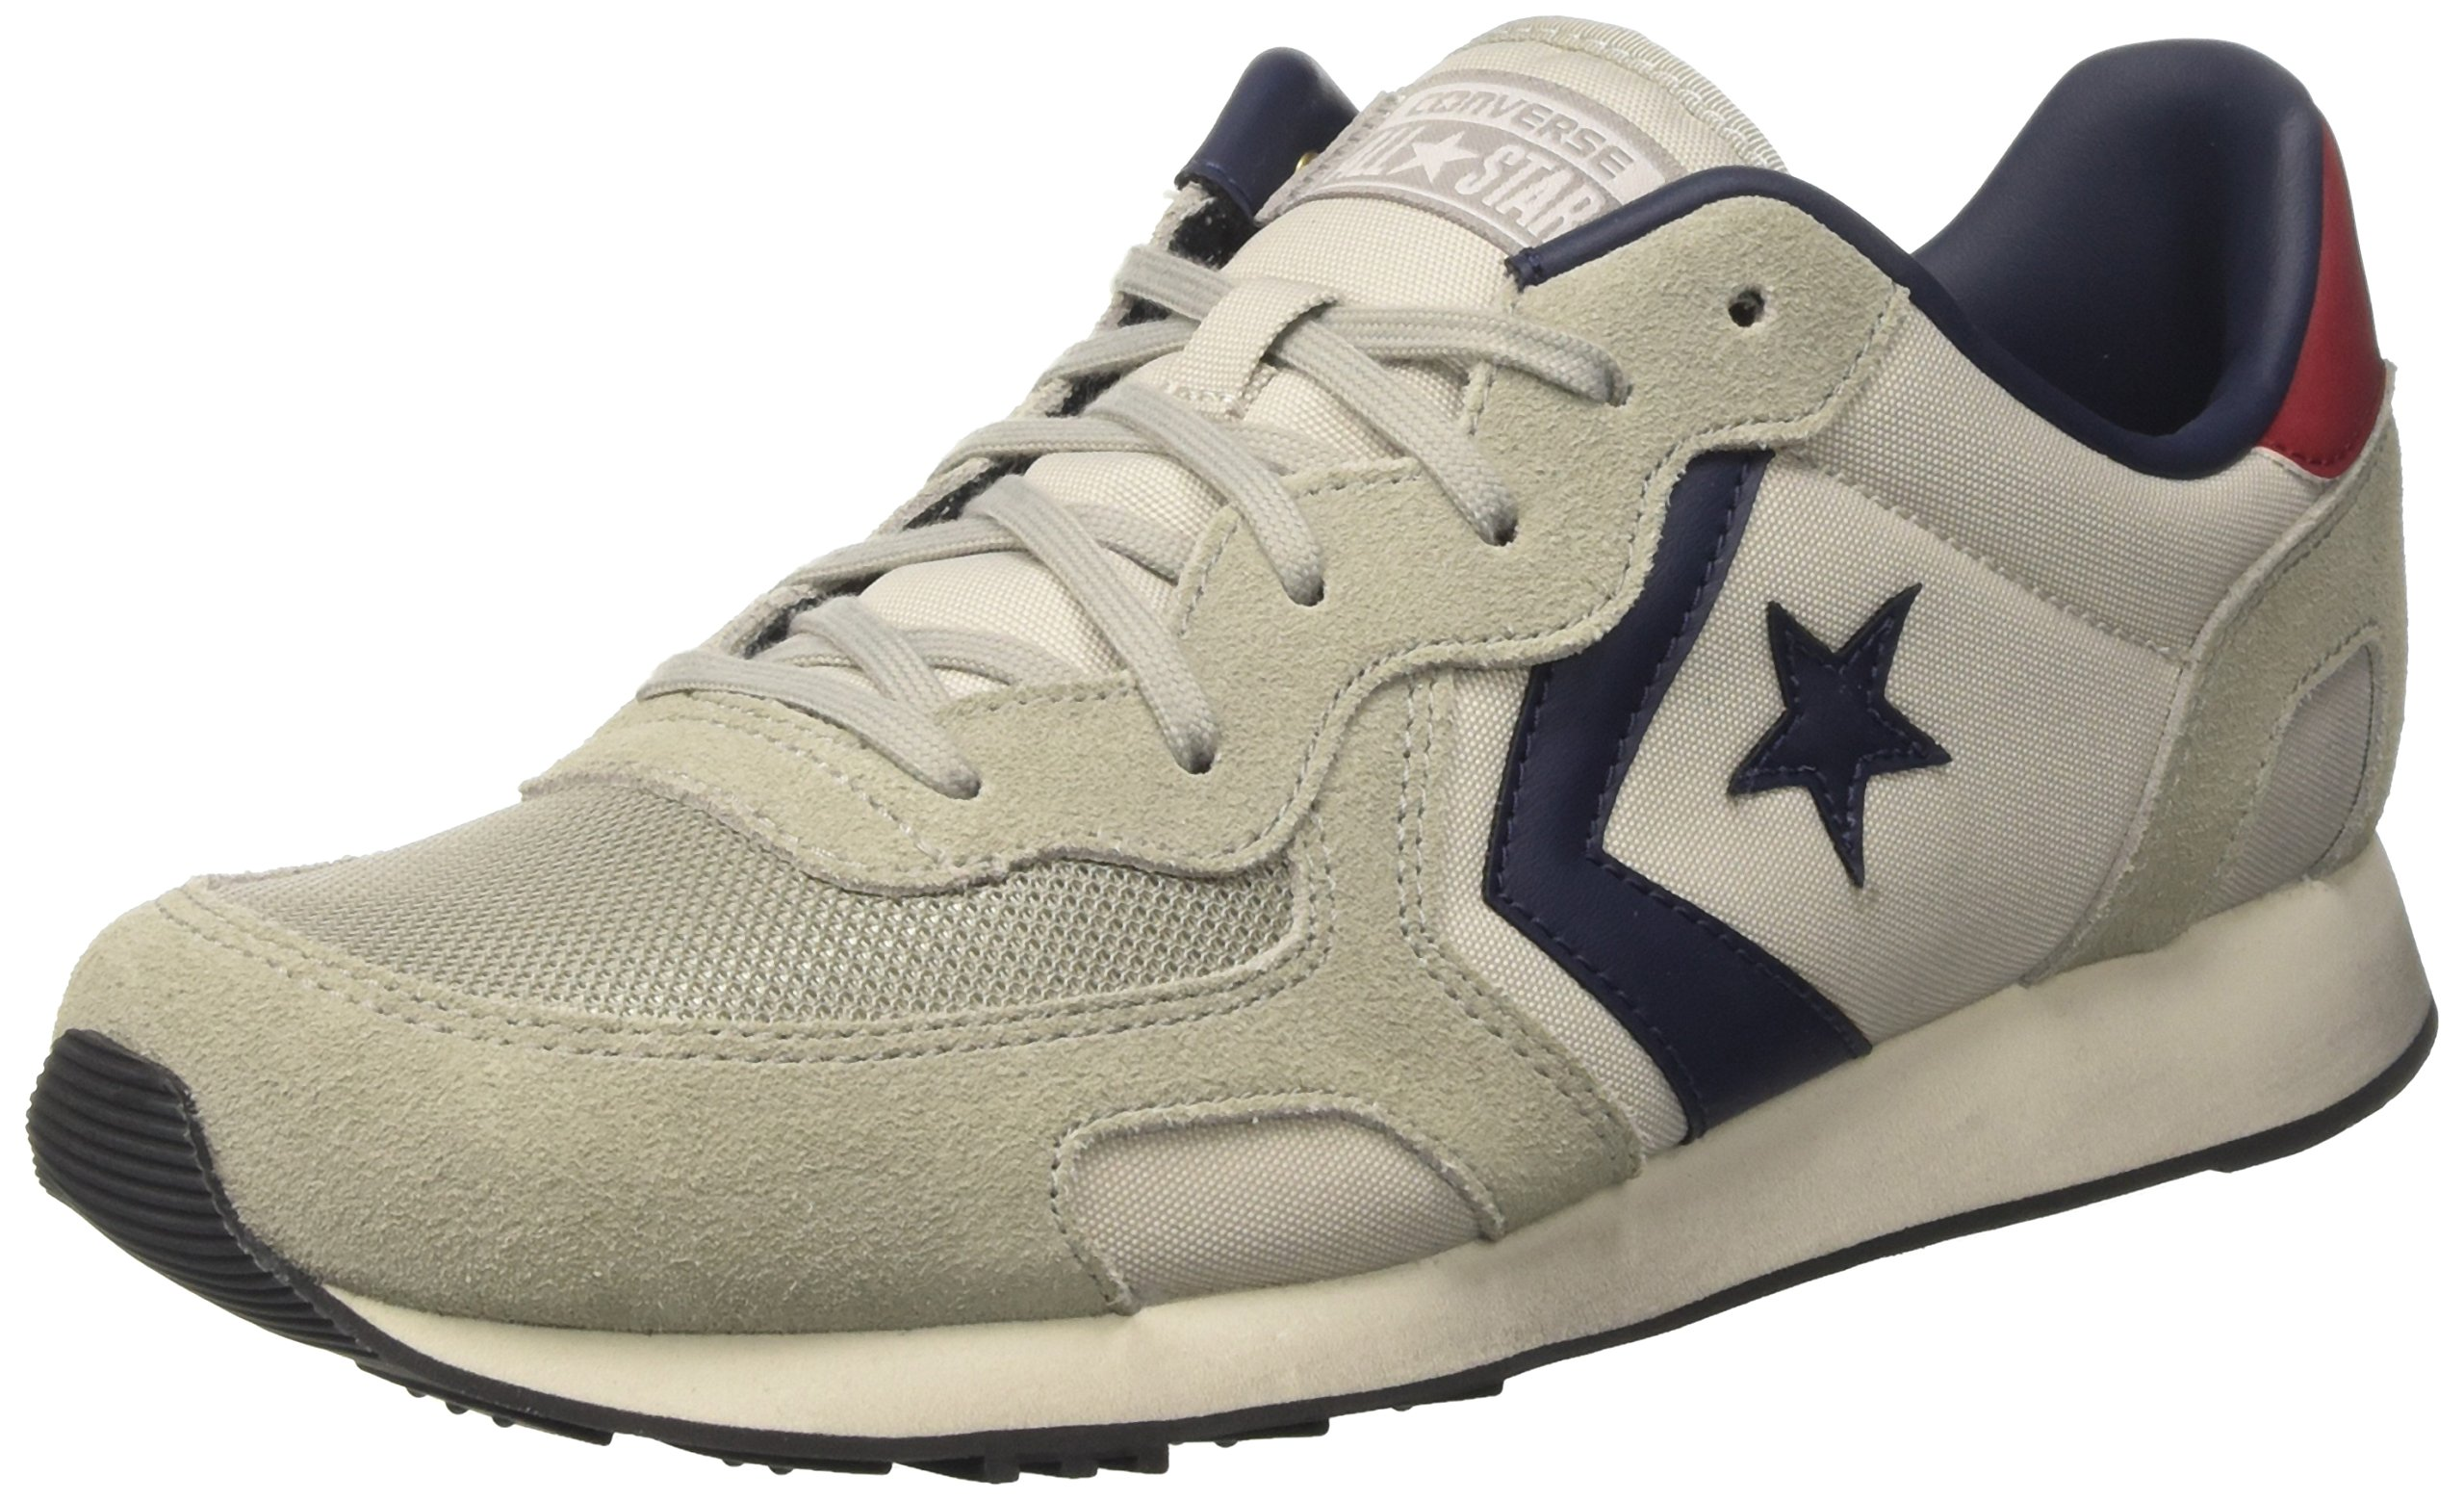 Auckland HommeGrisghost moon Converse OxSneakers Racer Grey Eu Distressed Struck37 mwn8vN0O